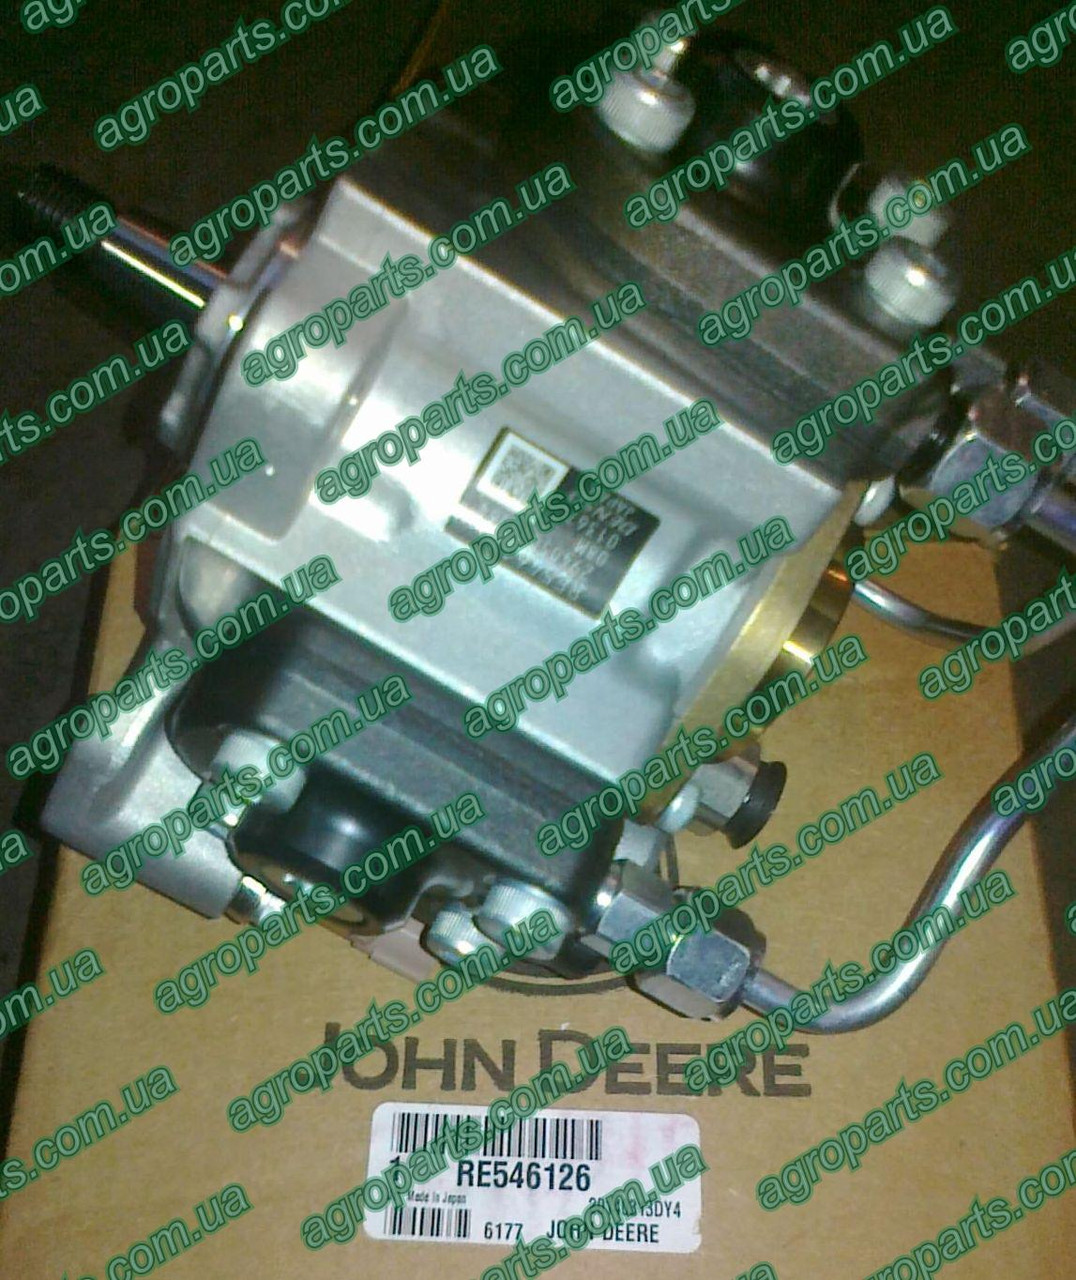 Насос RE546126 топливный RE534156 FUEL PUMP John Deere re546126 продам з/ч RE 534156 купити RE532519